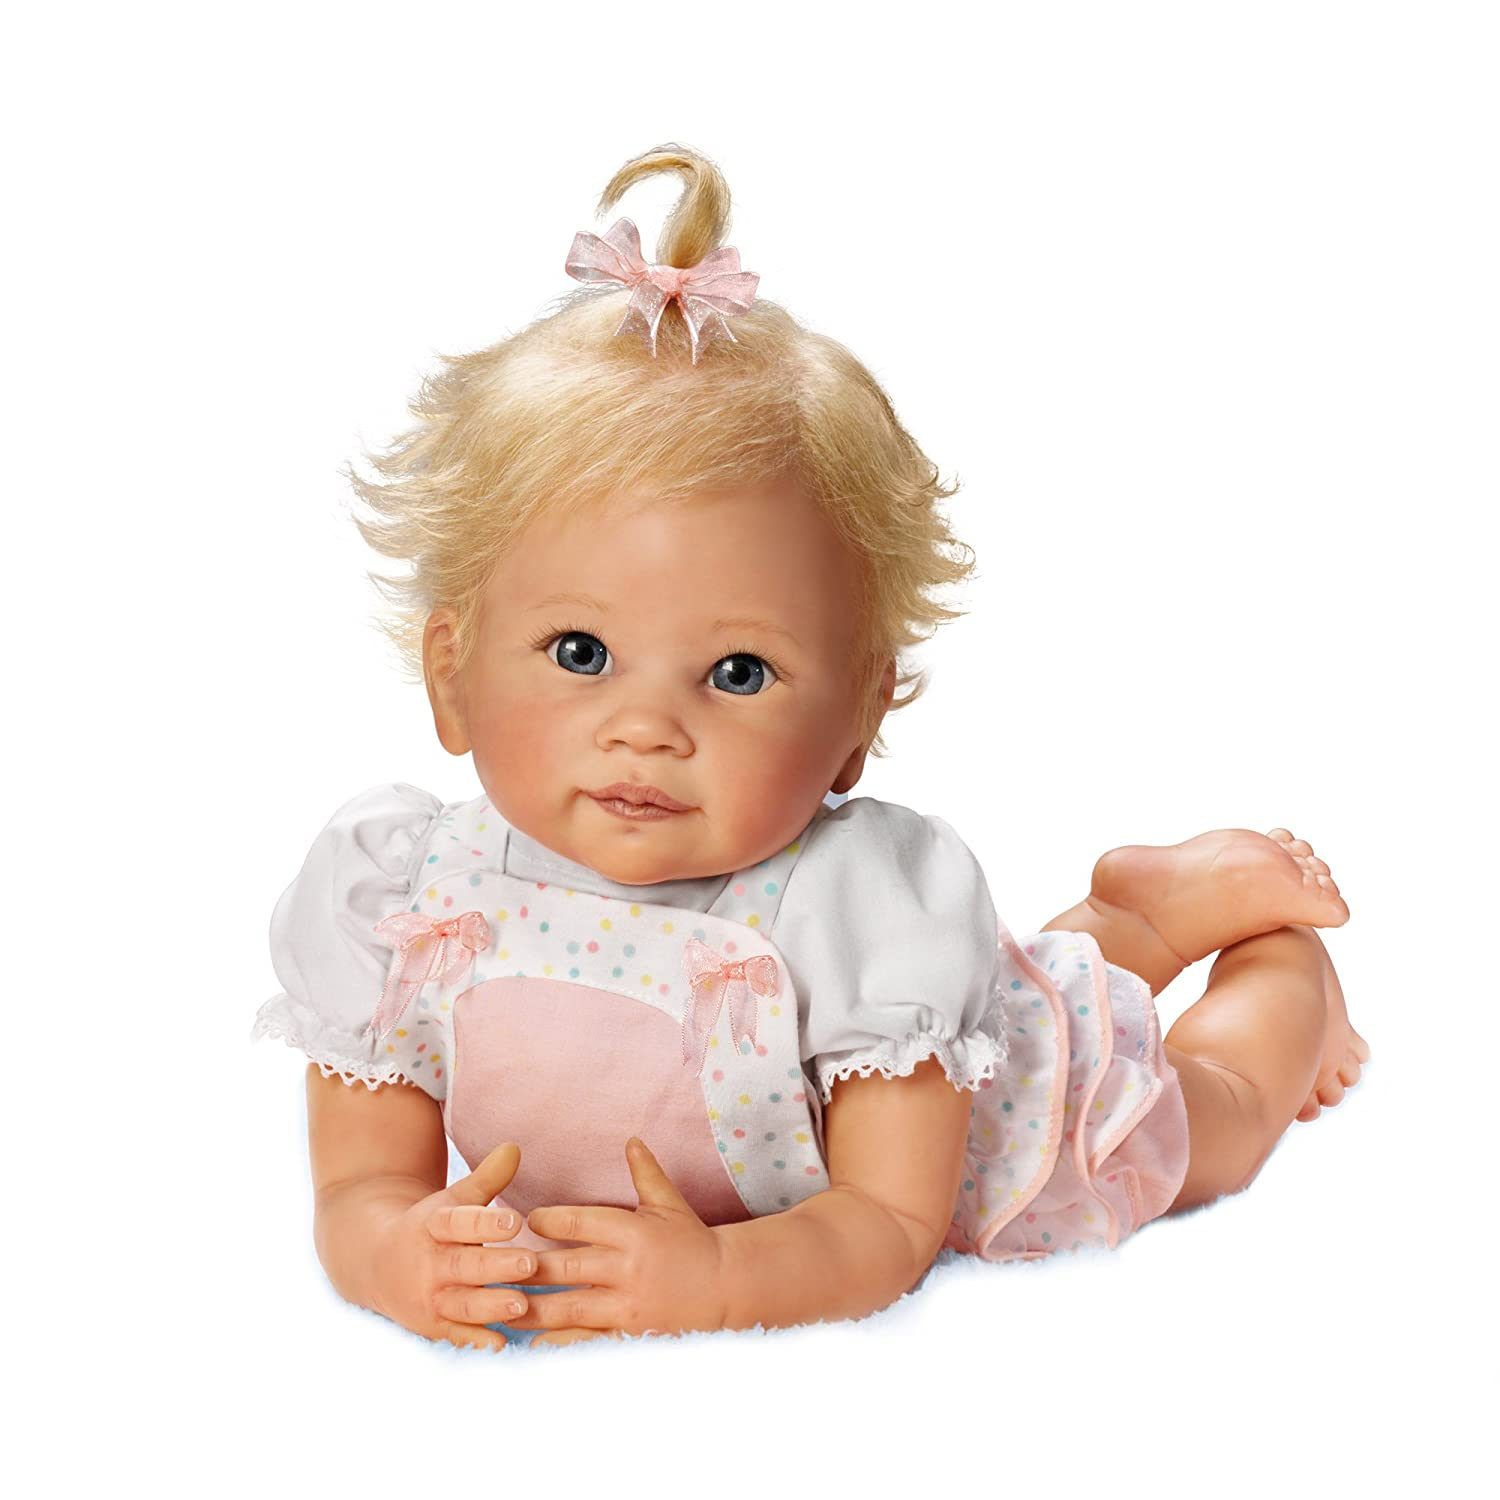 Ashton Drake 'Addie's Tummy Time' - Poseable Lifelike Baby Doll with Drawstring by Linda Murray - RealTouch Vinyl Skin The Ashton-Drake Galleries